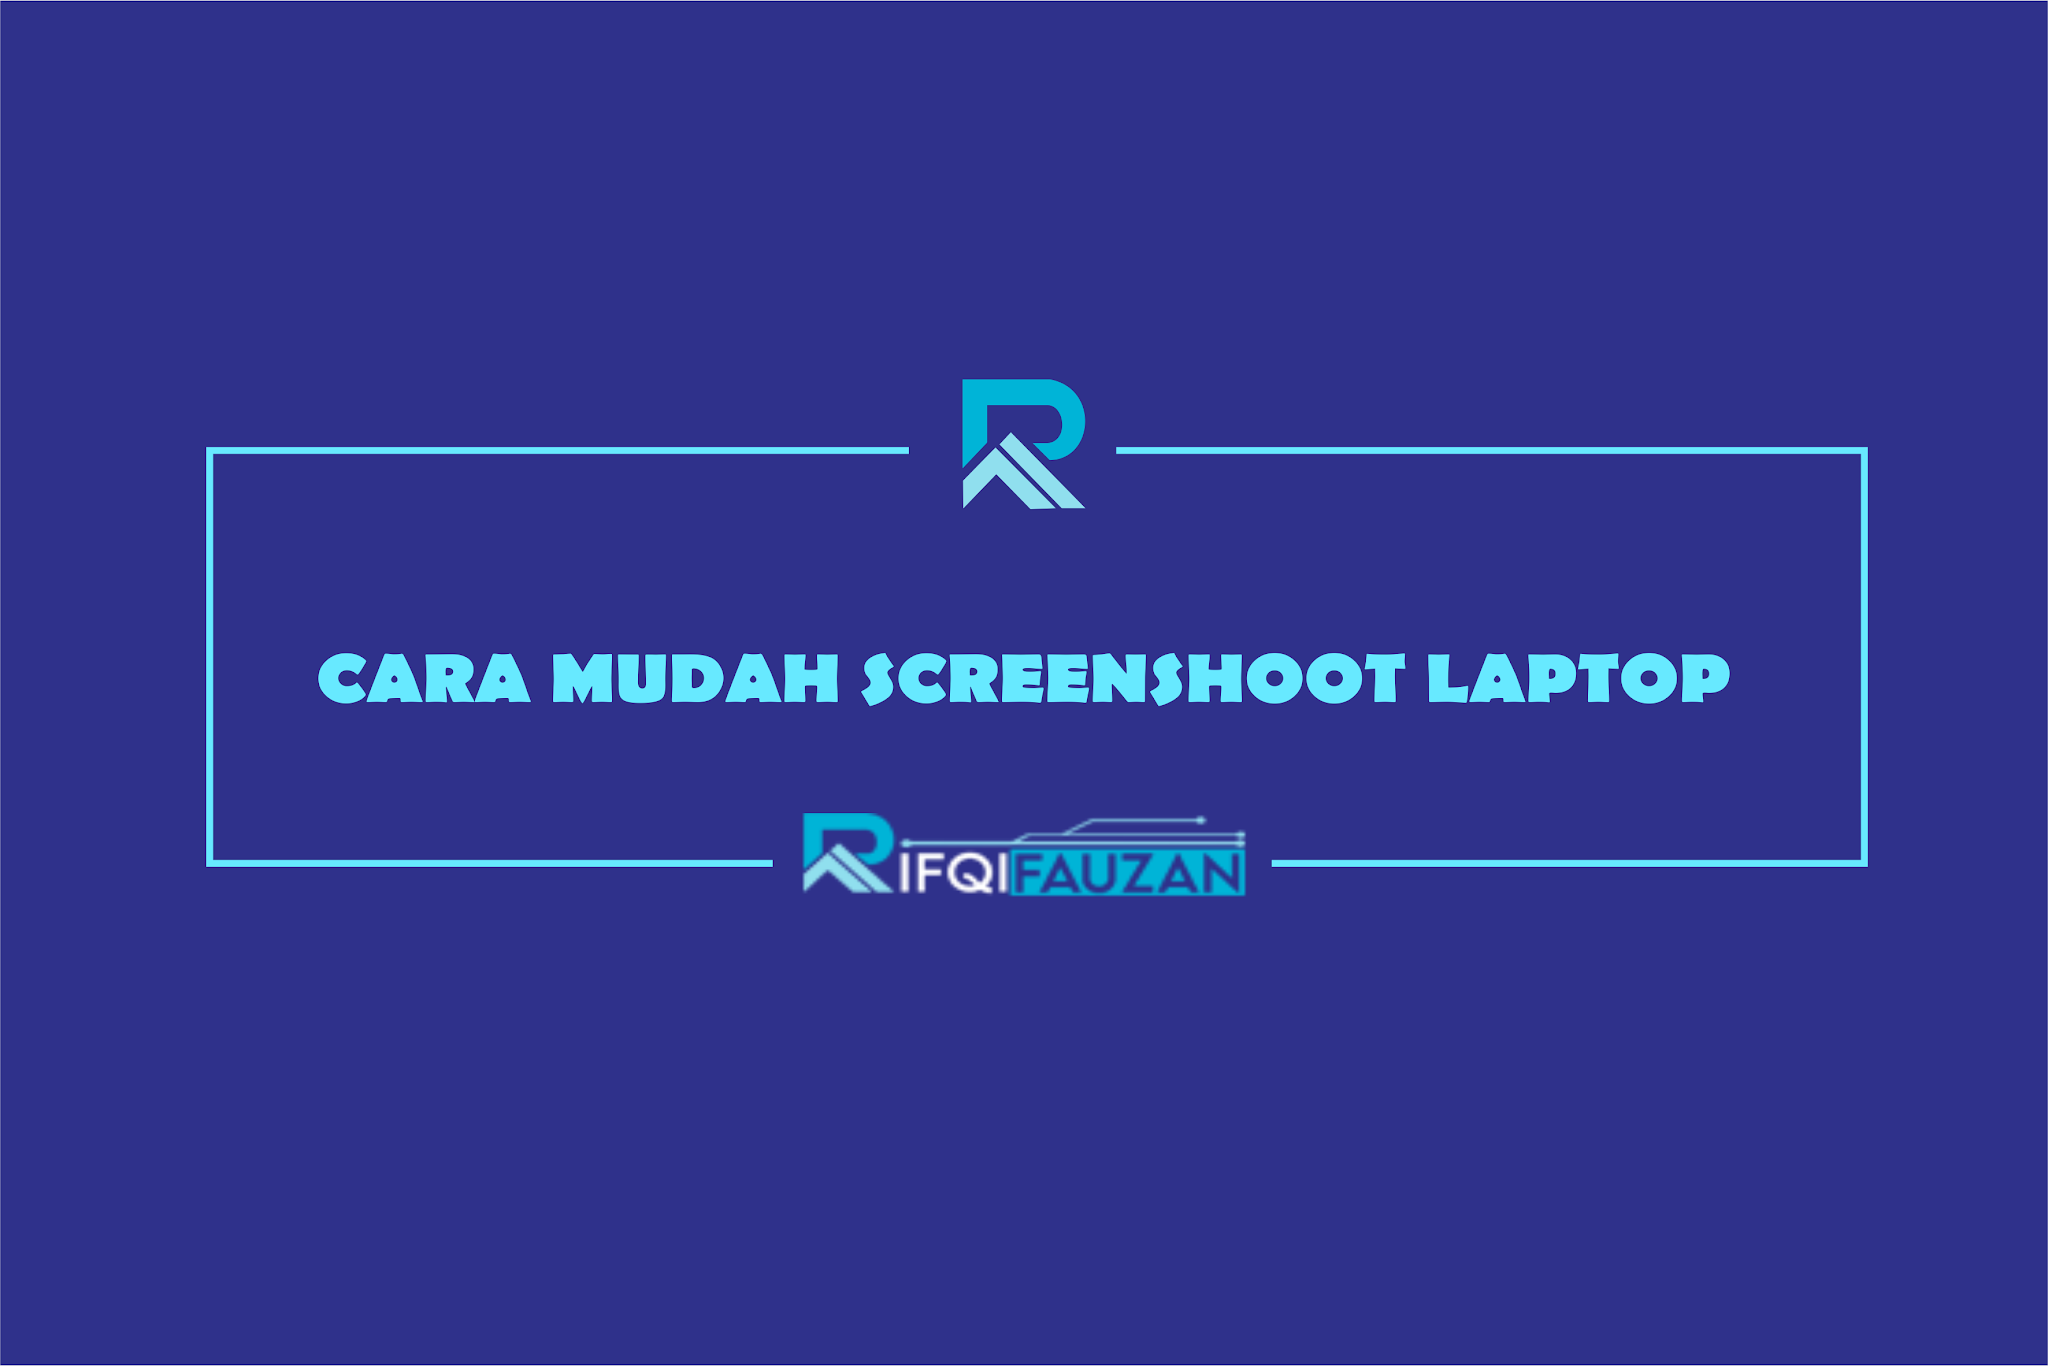 CARA SCREEN SHOT LAPTOP TERMUDAH